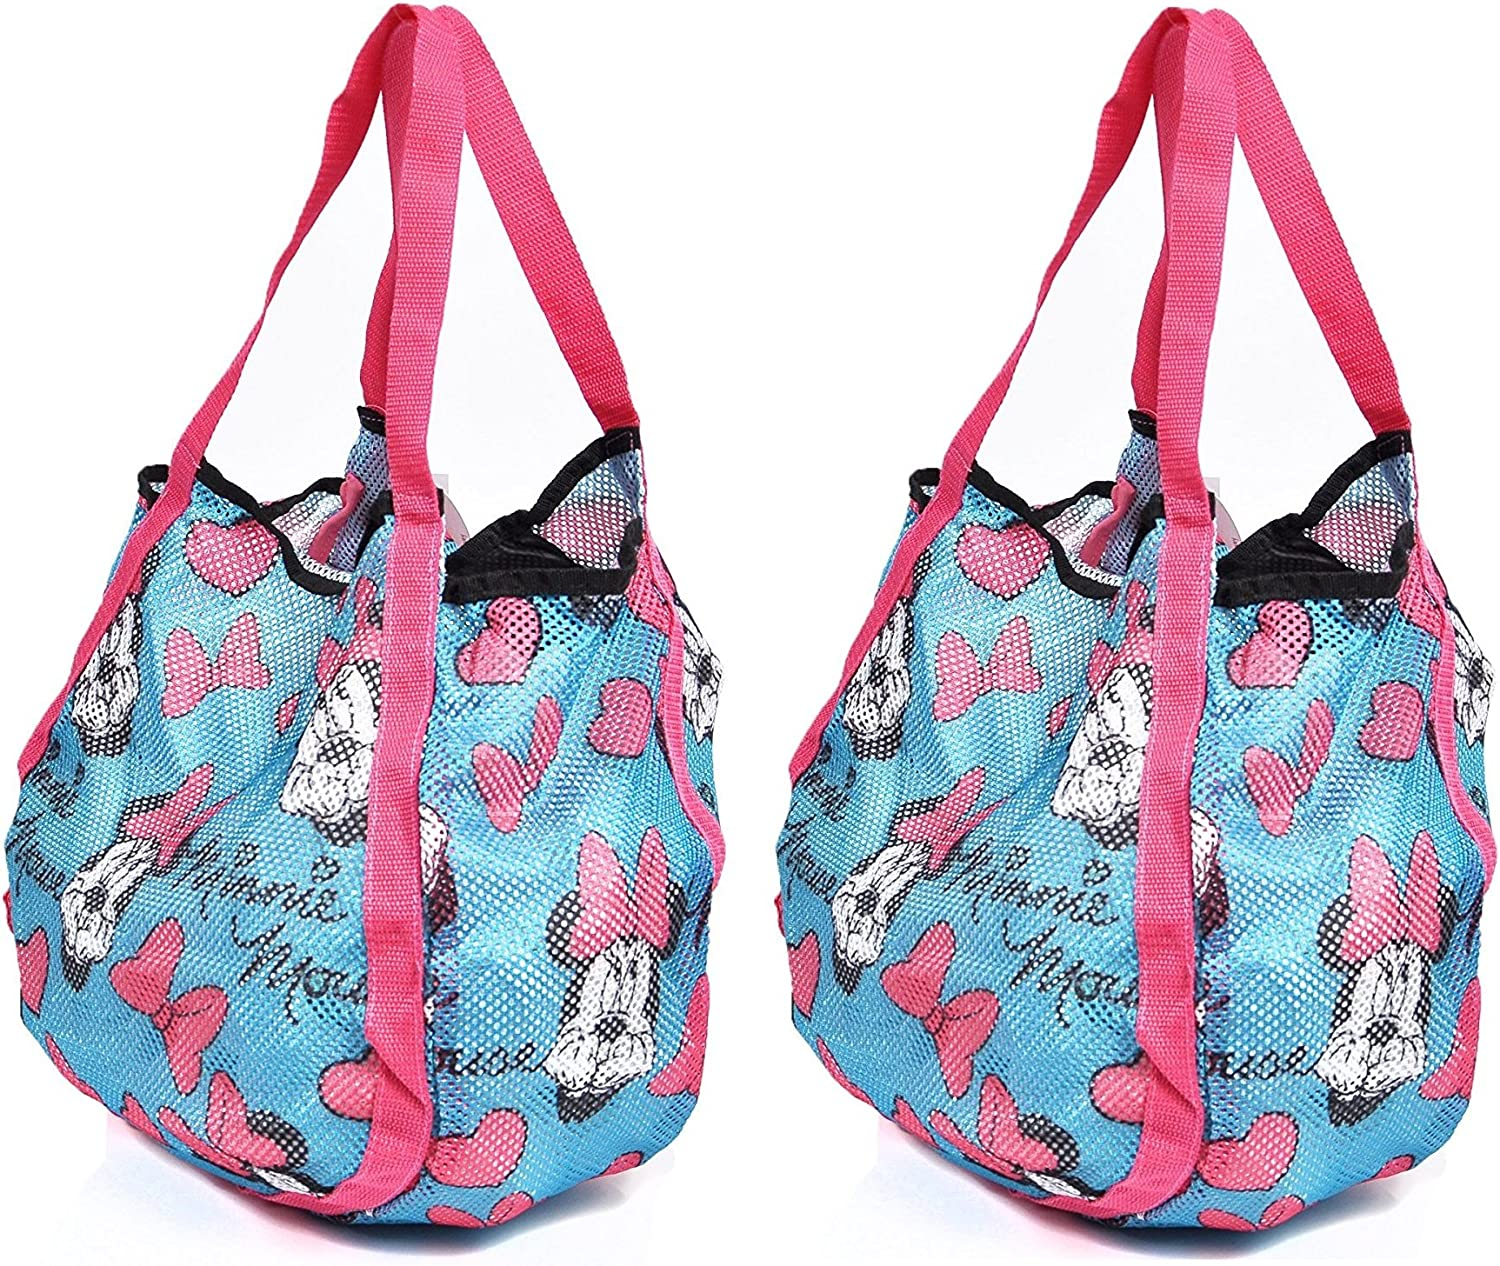 Disney Mickey and Minnie Mouse Mesh Hobo Beach Totes 2 Pack both Blue